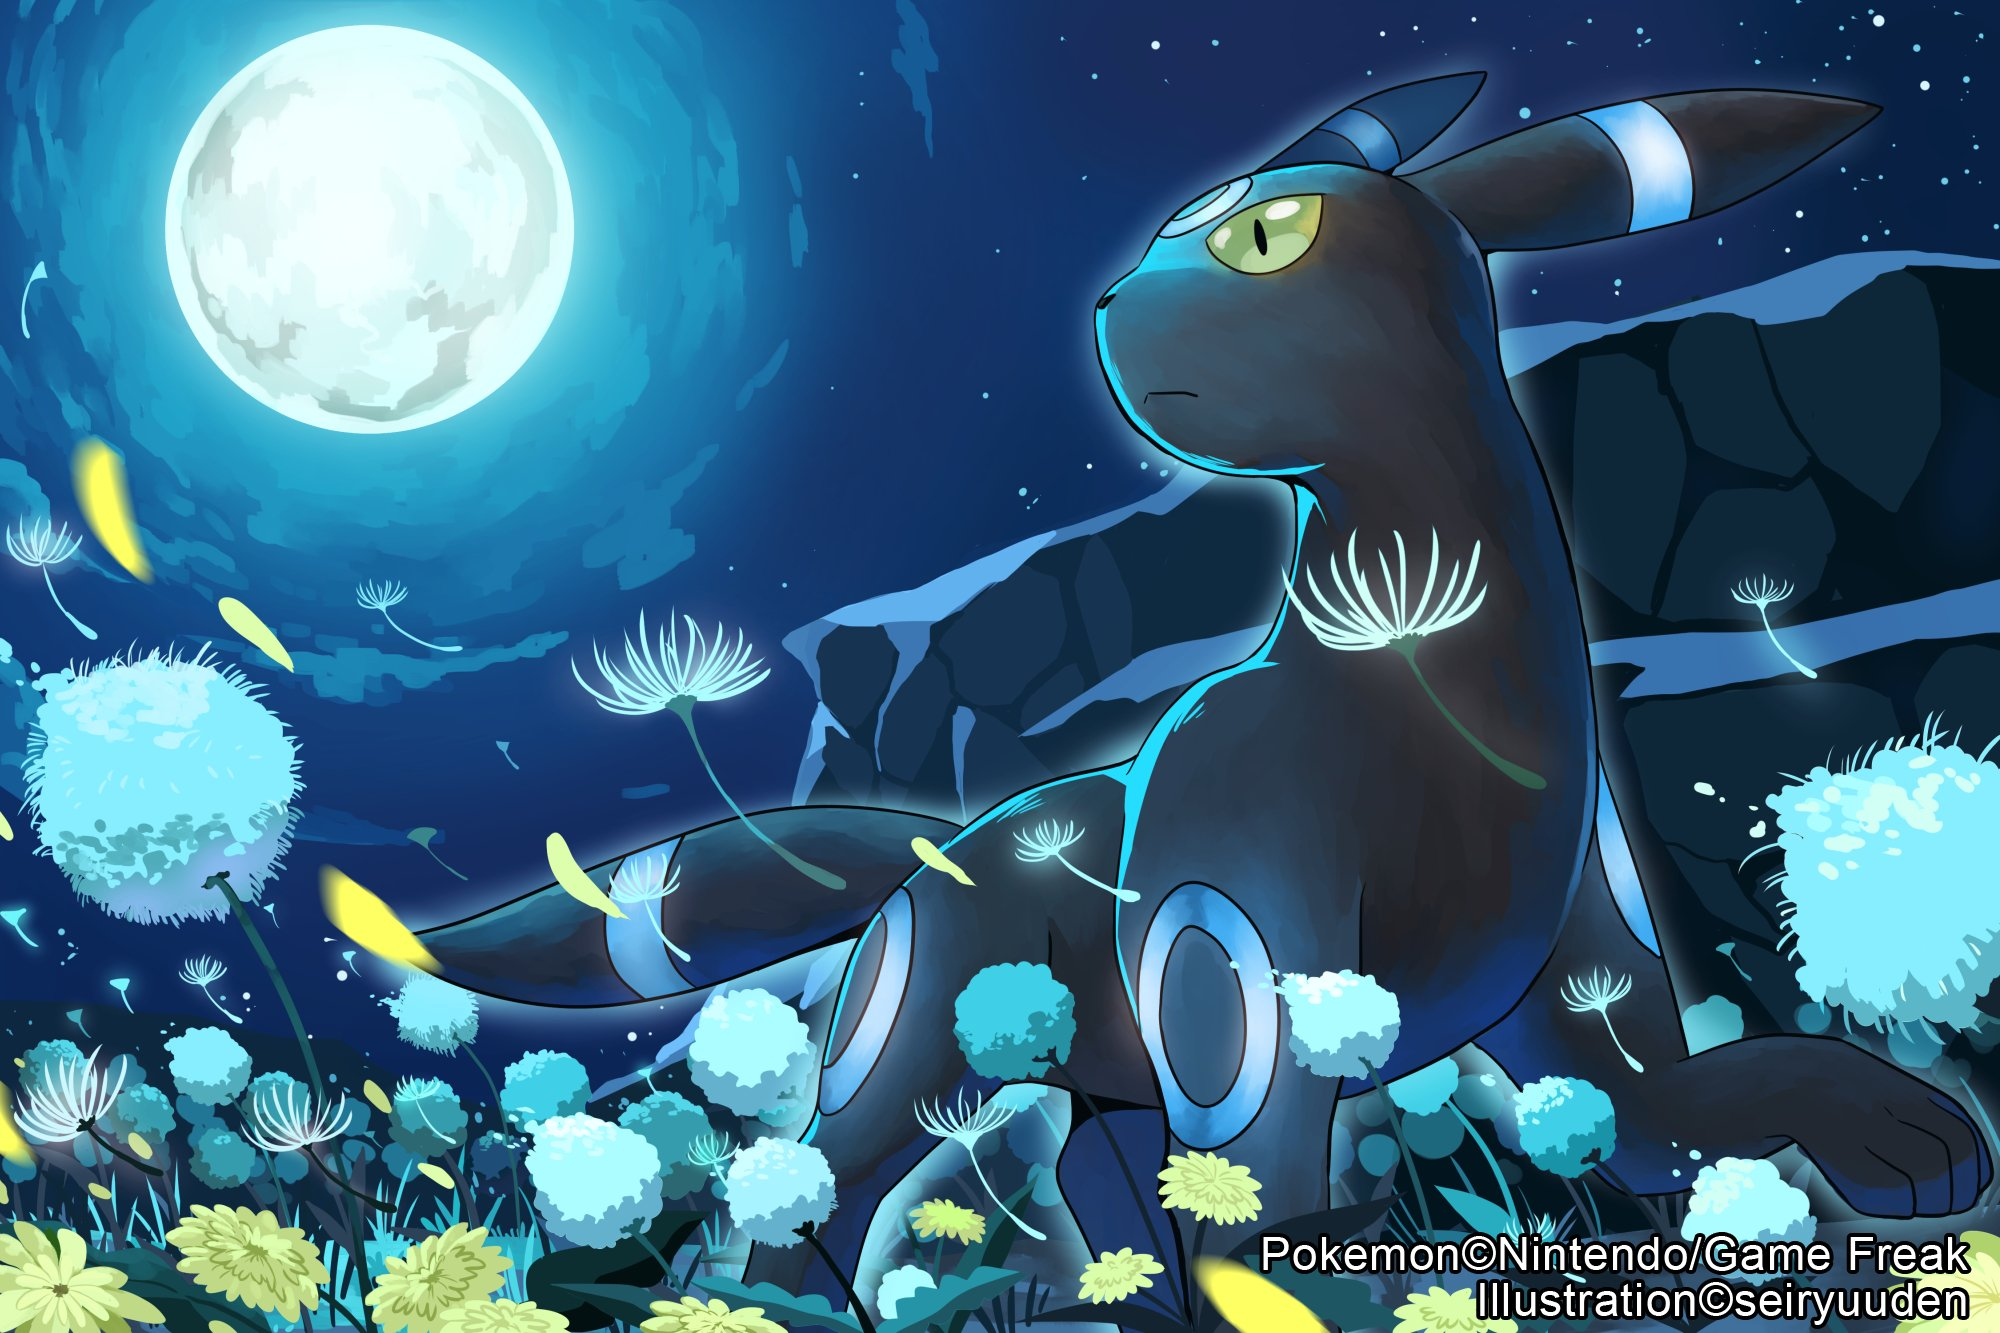 Pokemon Umbreon Wallpaper images 2000x1333